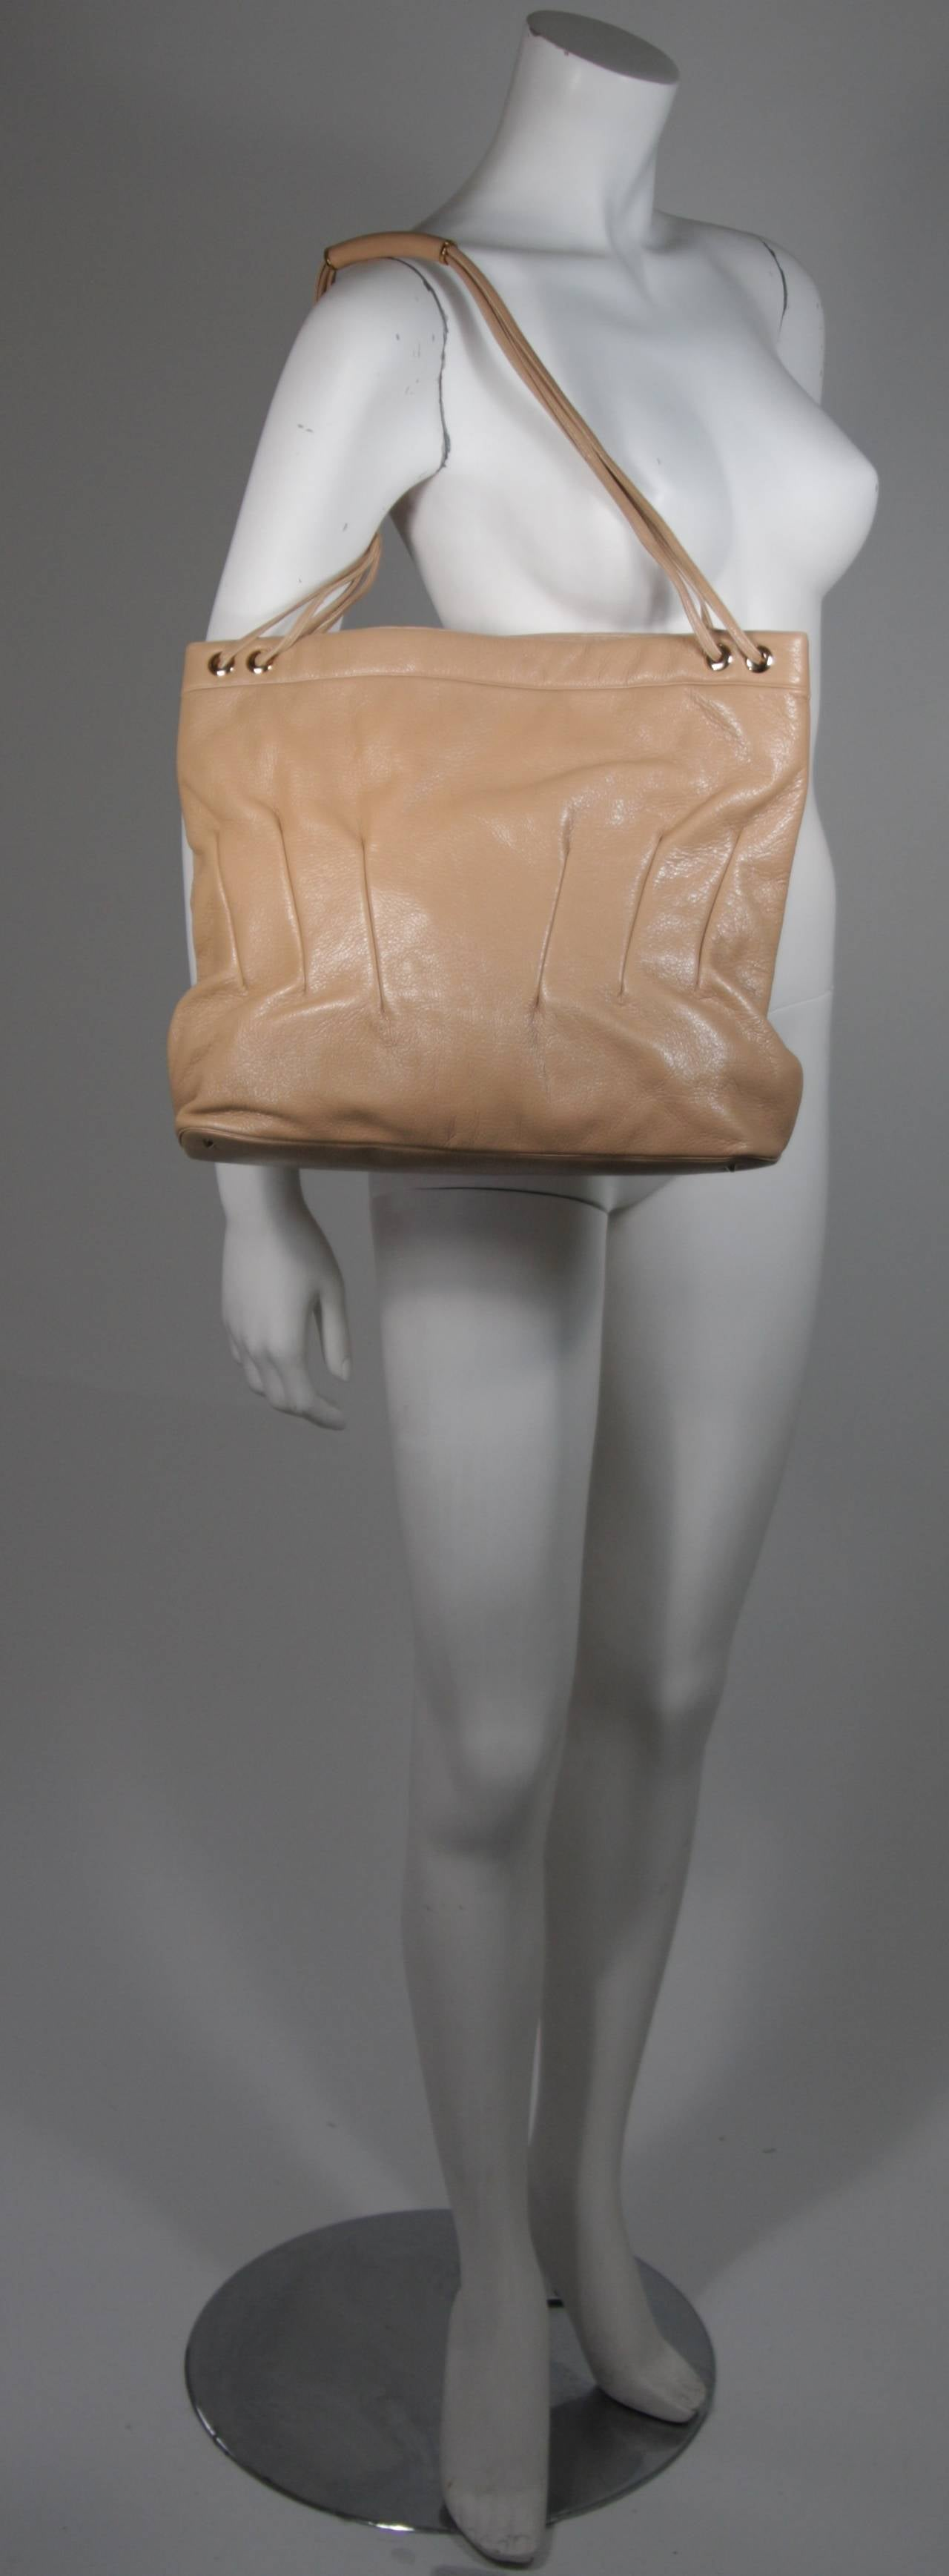 Judith Leiber Caramel Tote with Dart Detailing In Excellent Condition For Sale In Los Angeles, CA